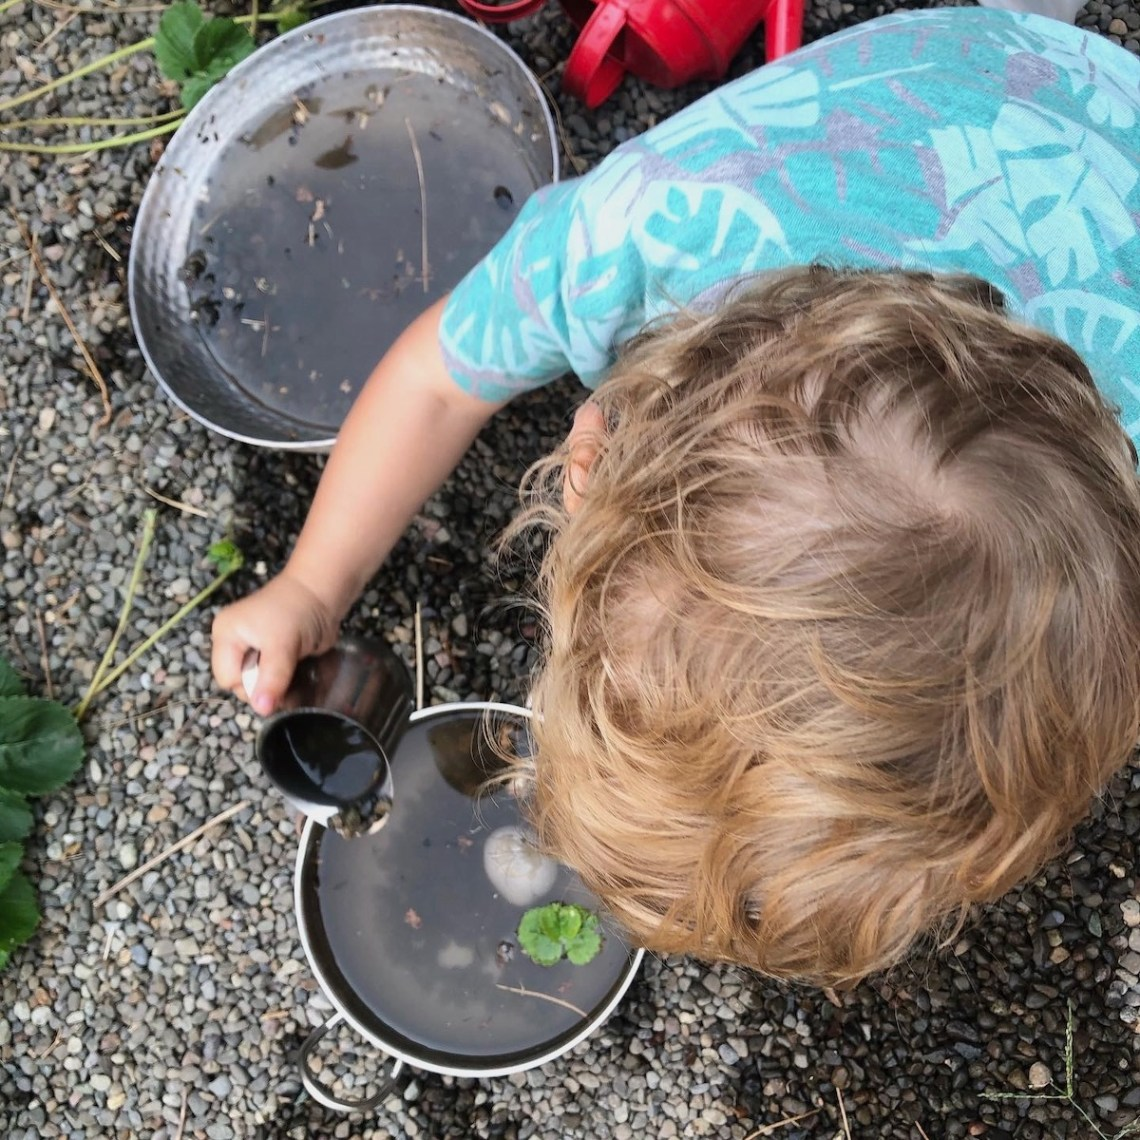 mud kitchen play ideas - pouring, leaves, rocks